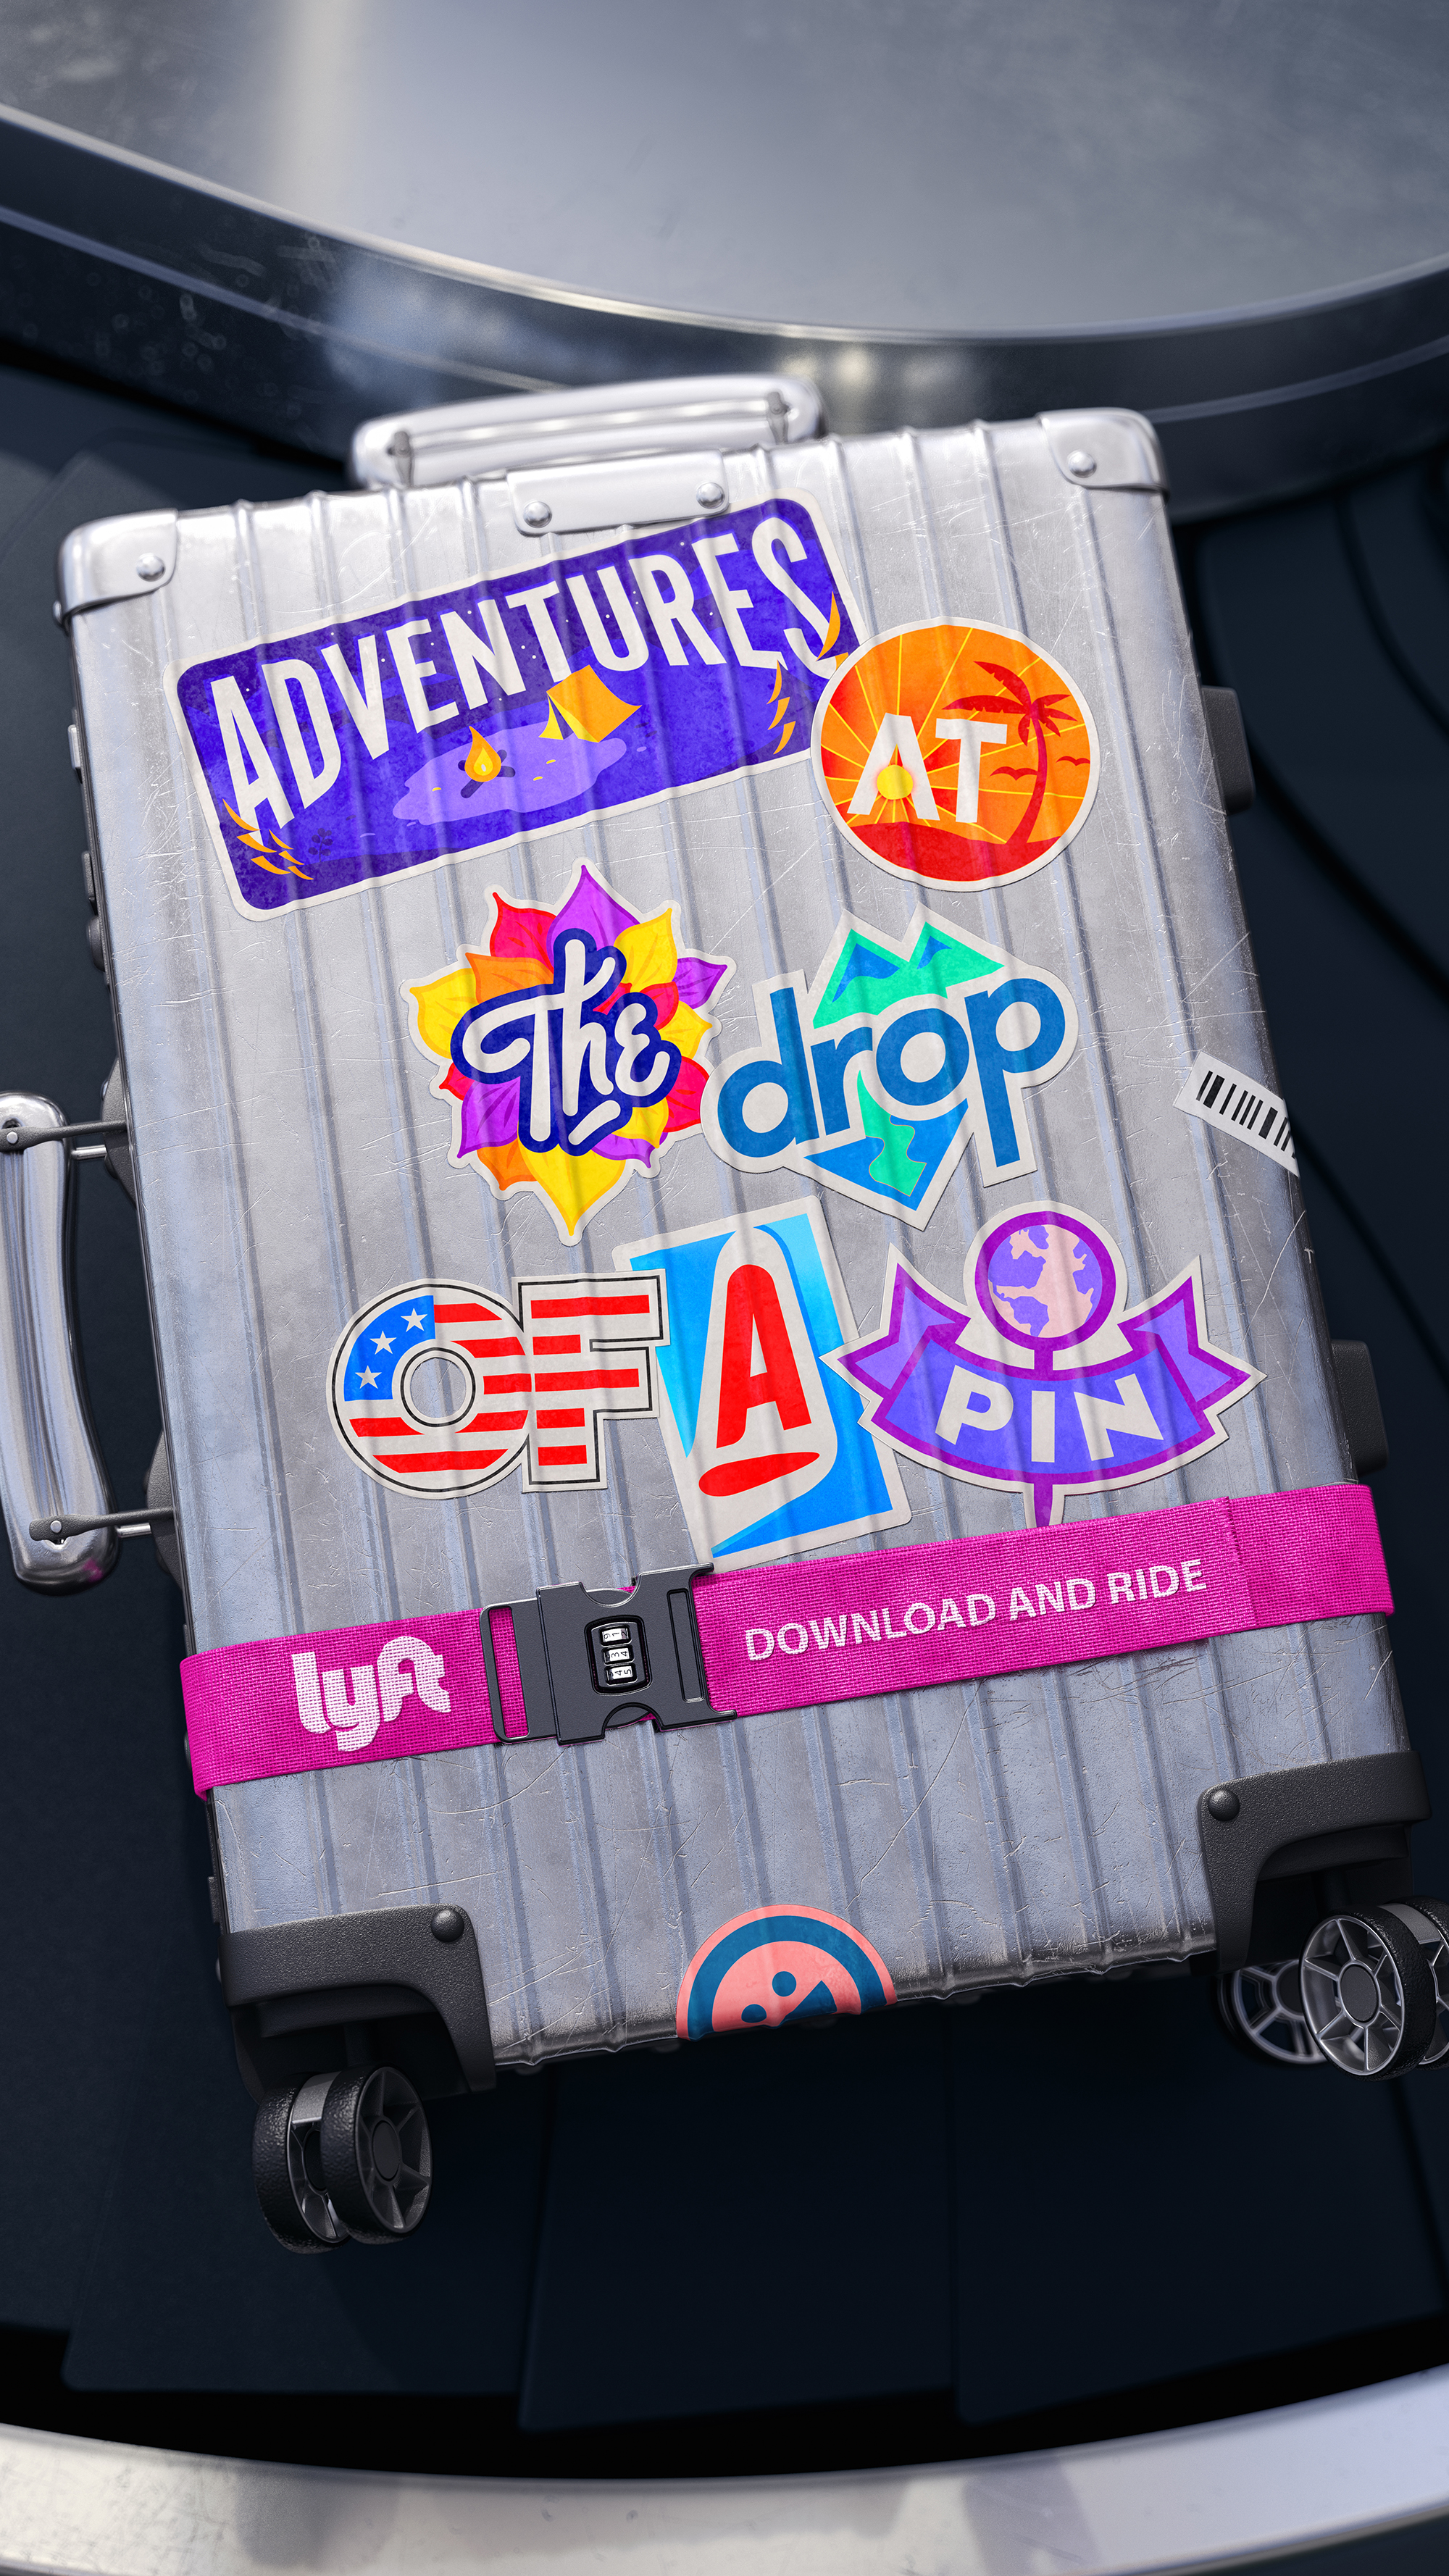 Lytf_CityOOH_TravelStickers_Cropped_Compressed.jpg